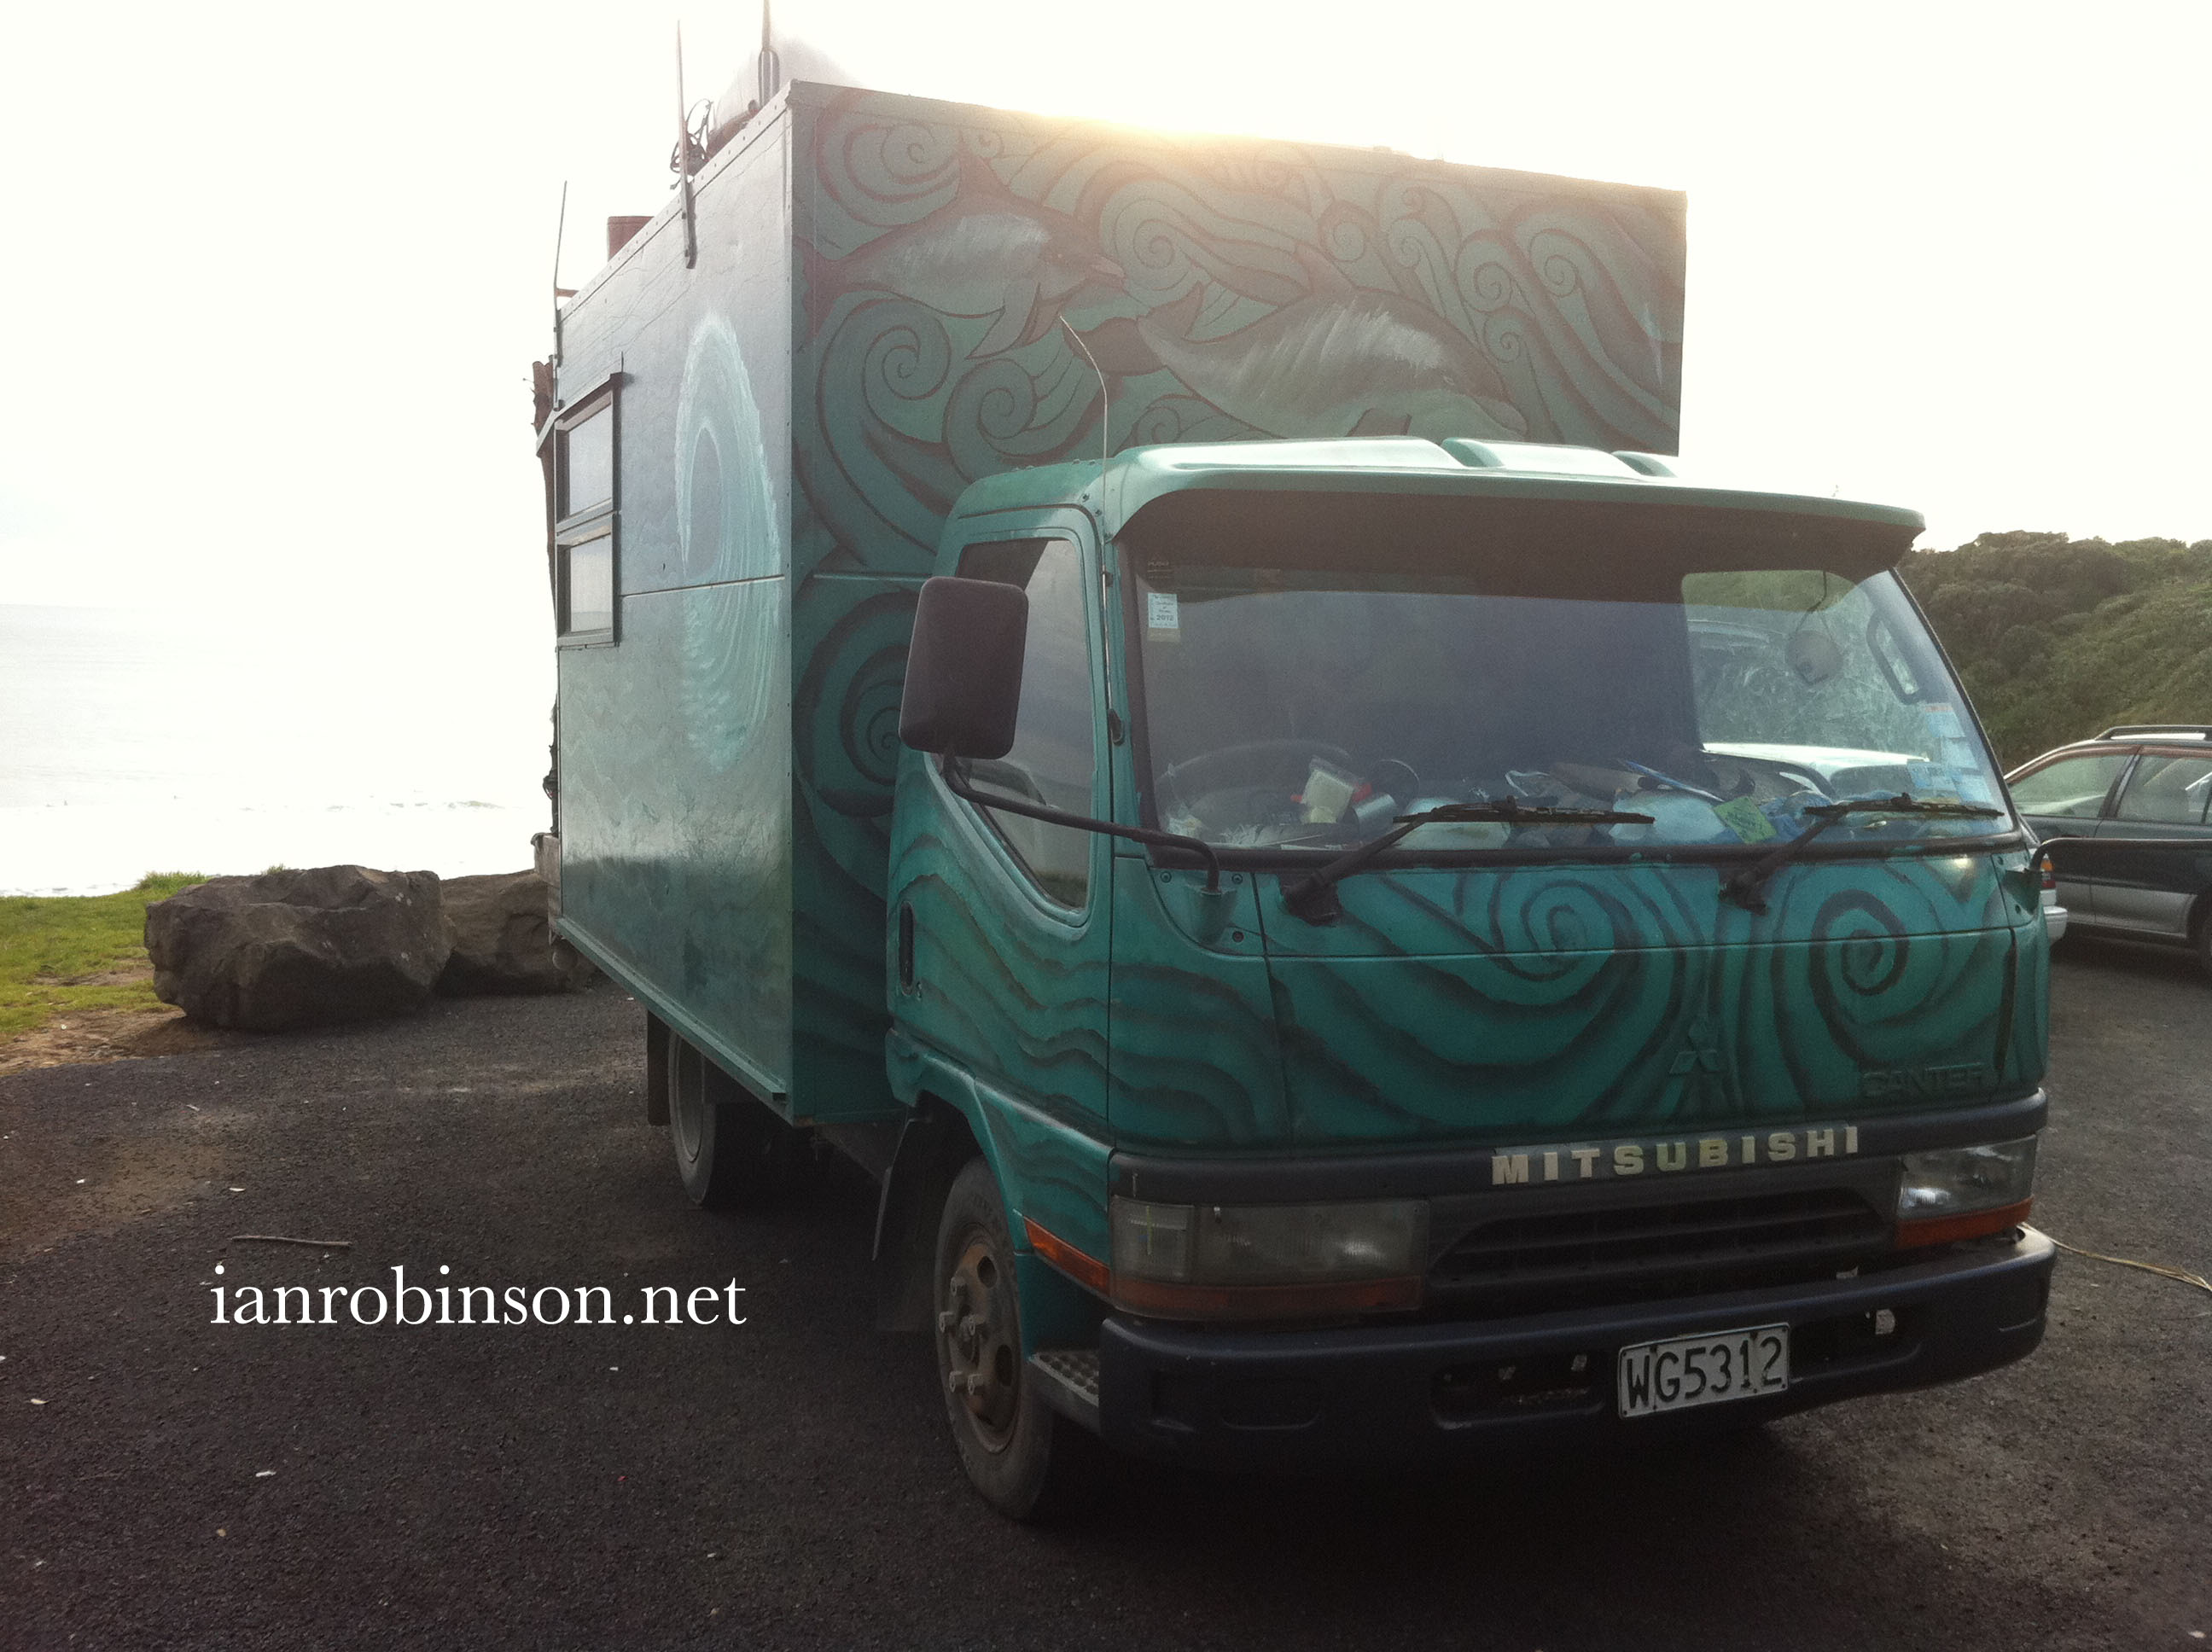 Permanent New Zealand Nomad Mobile 1